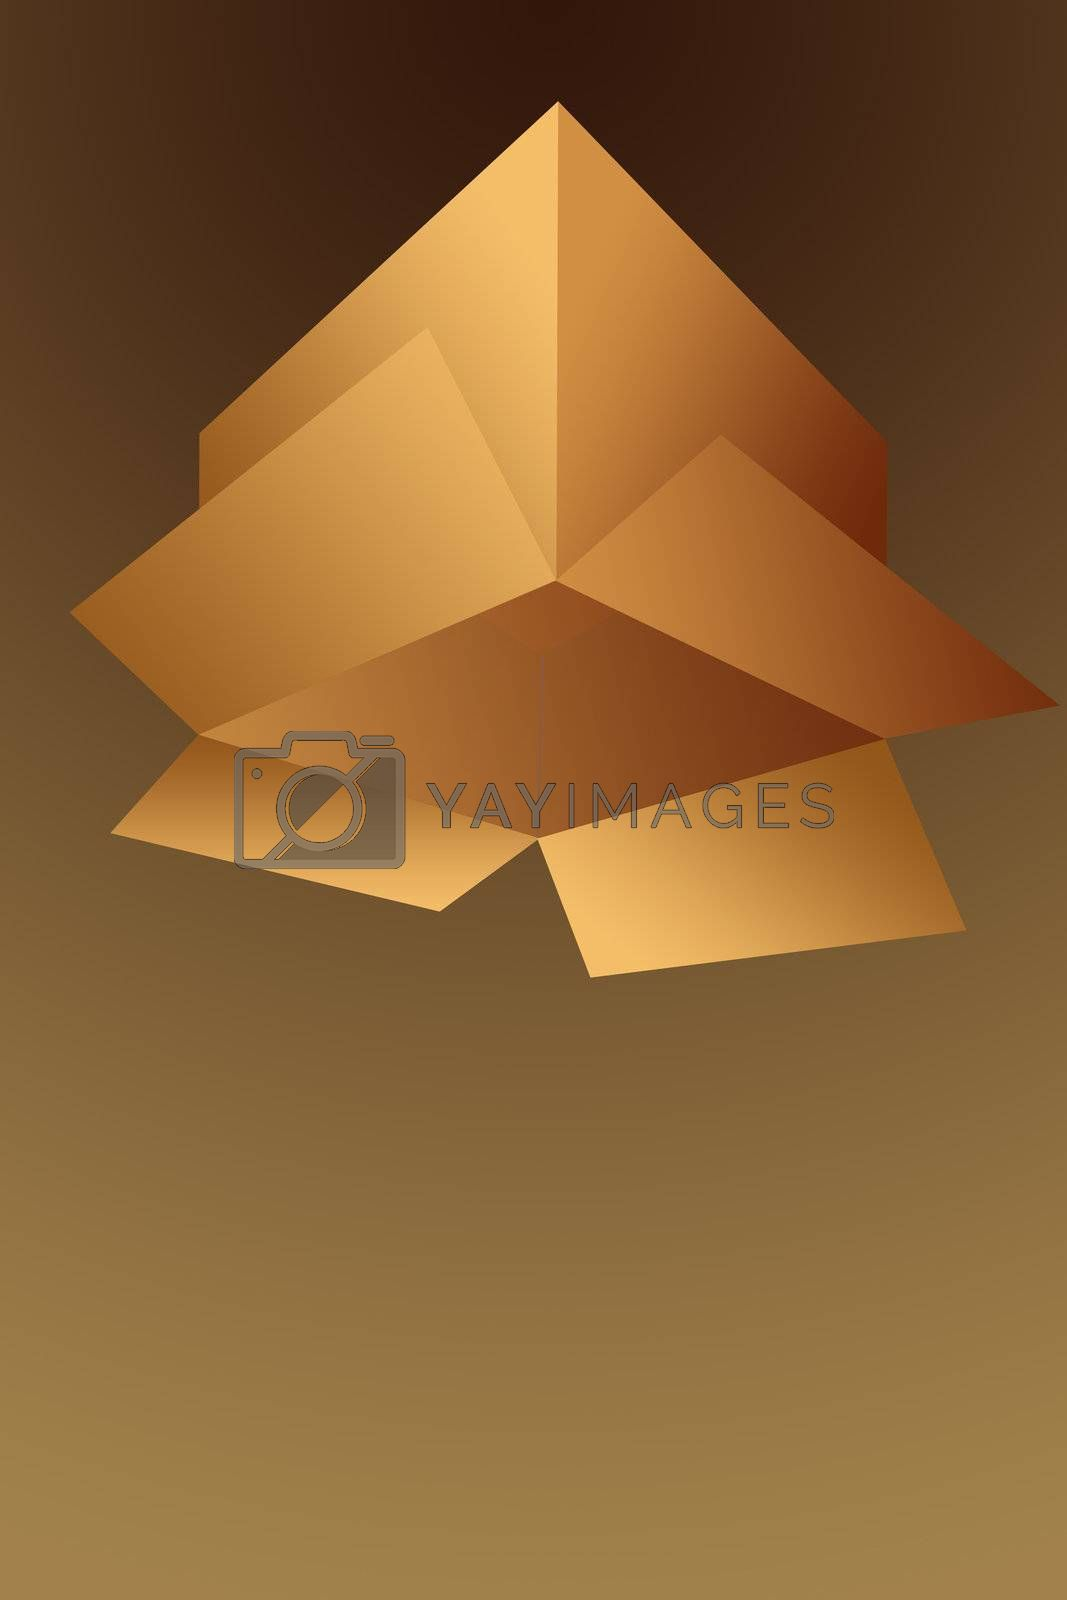 Open Upside Down Empty Cardboard Shipping Box Illustration Isolated on a Brown Background.